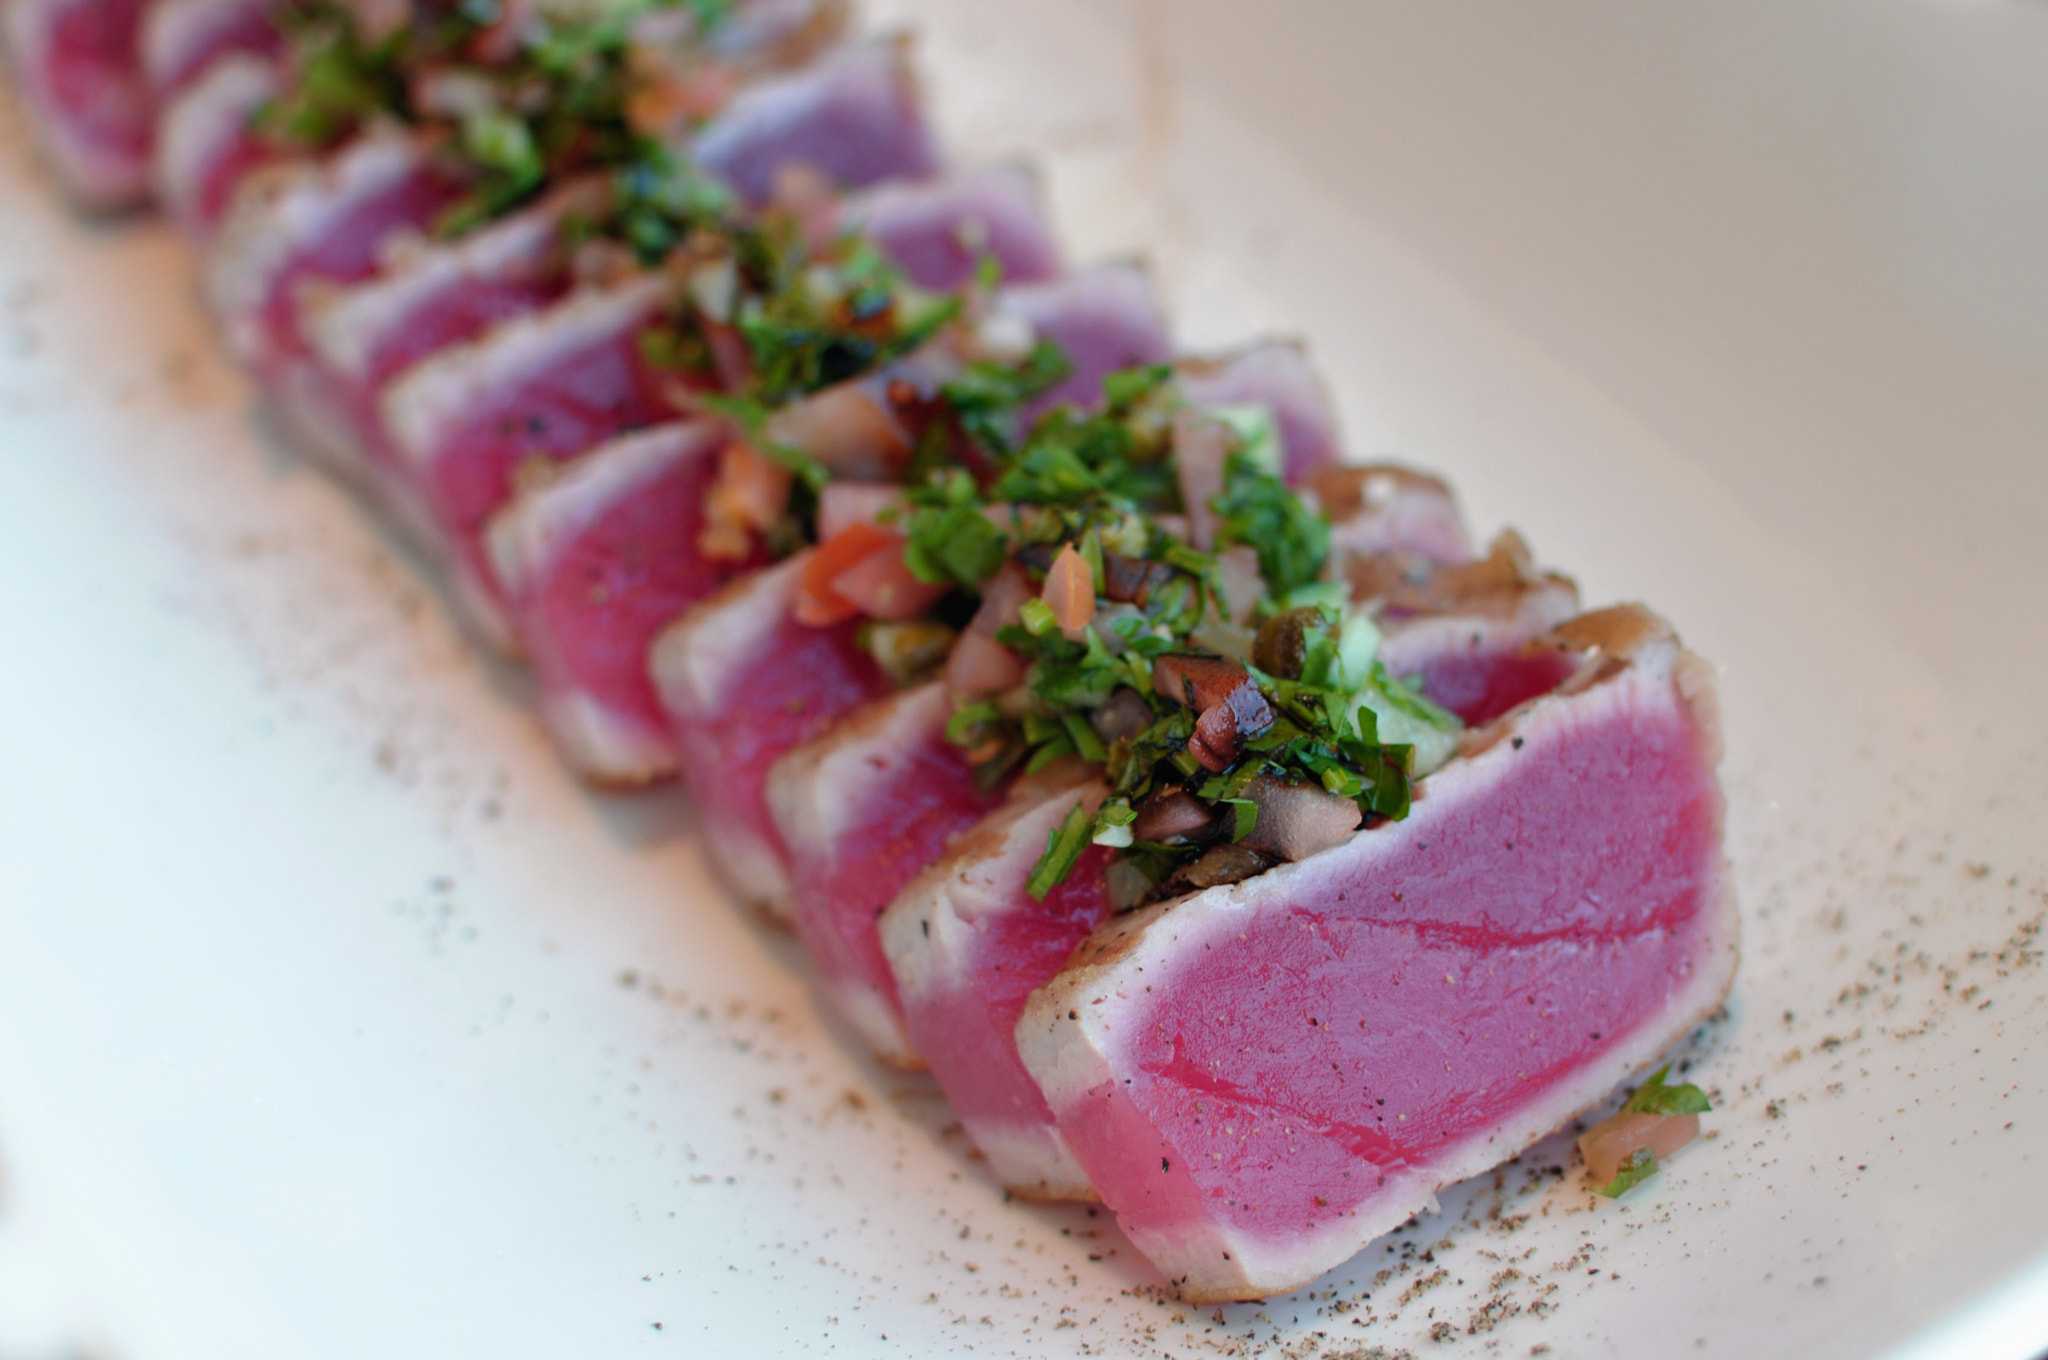 Photograph seared tuna by Simon Sperling on 500px